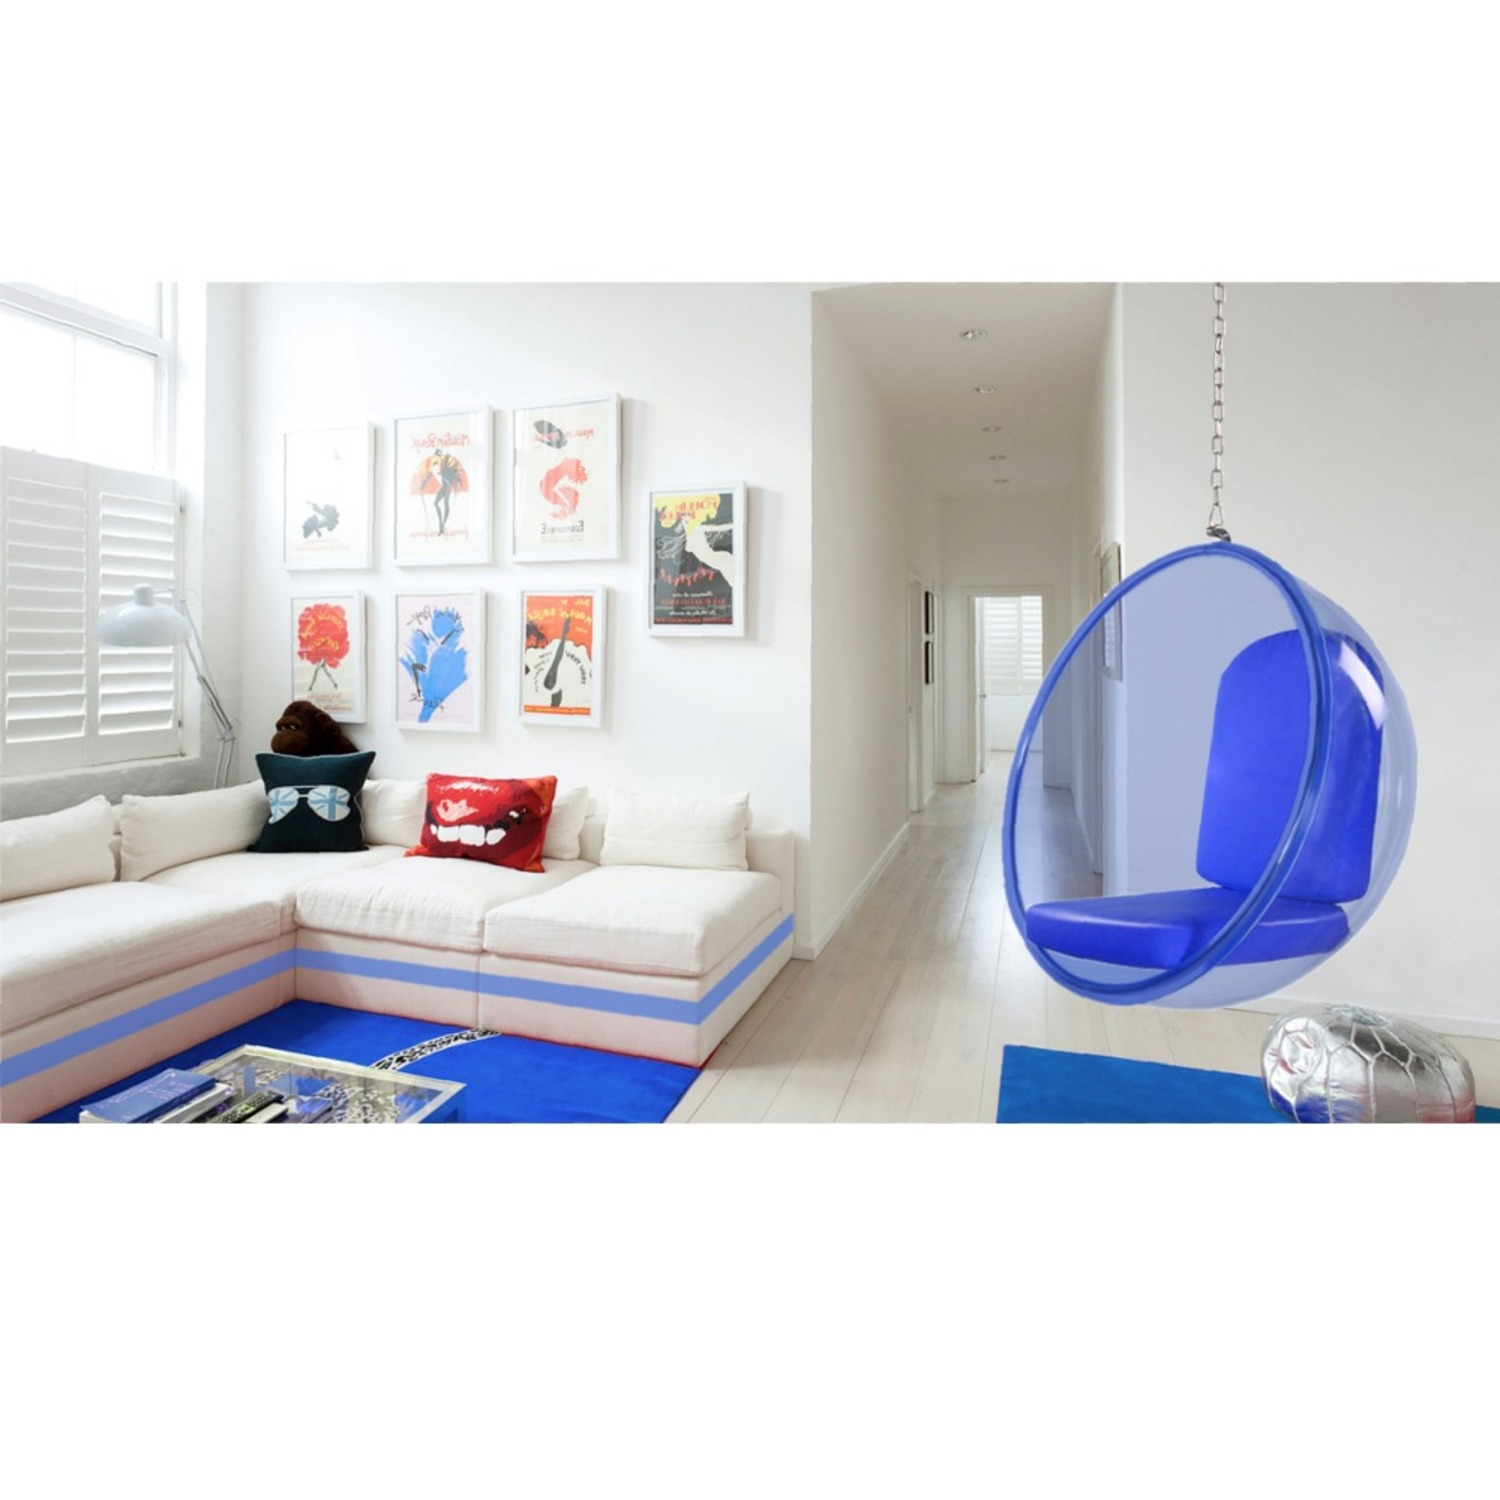 Hanging Chair In Blue Acrylic W/ PU Leather - image-2